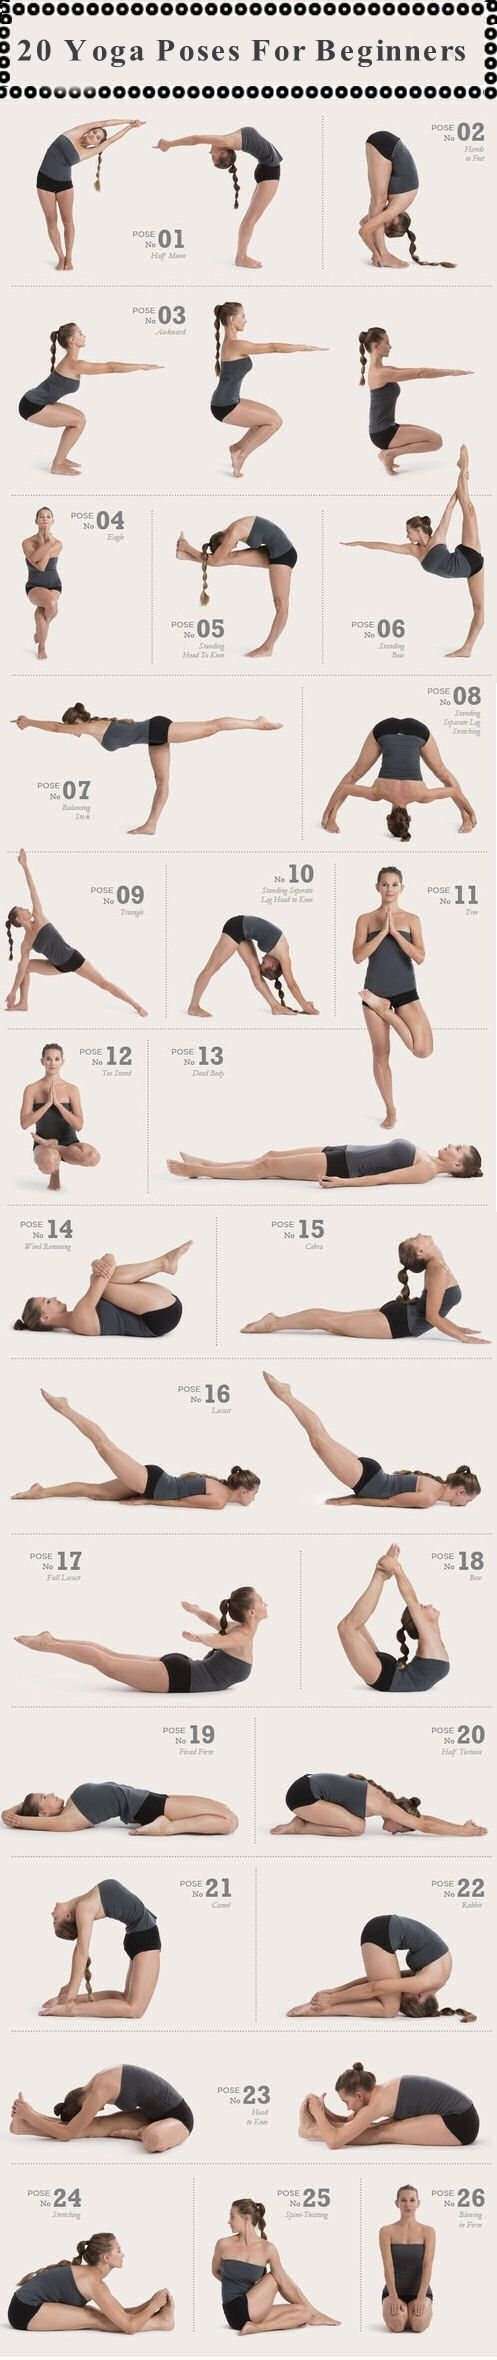 20 Yoga Poses For Beginners Pictures, Photos, and Images for Facebook, Tumblr, Pinterest, and Twitter